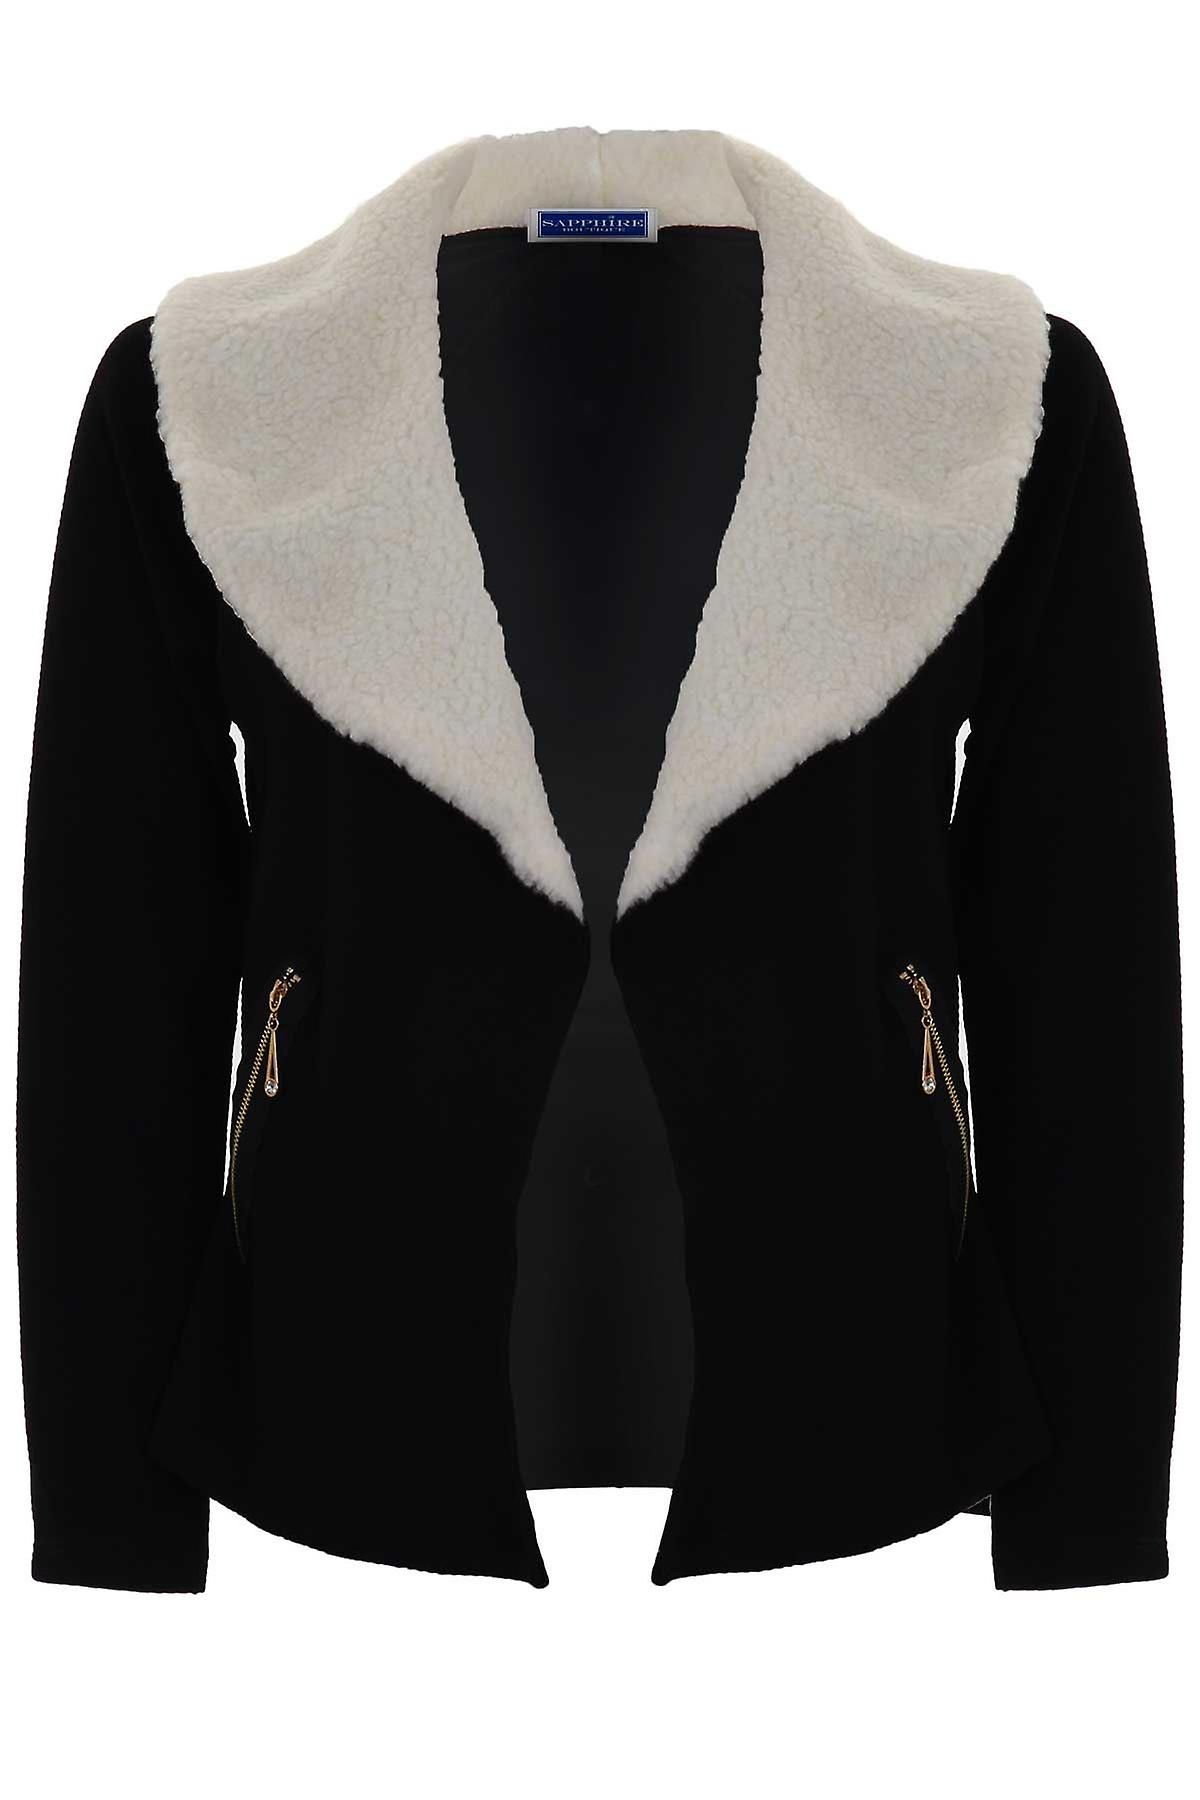 Ladies Faux Wool Fur Collar Textured Open Front Women's High Low Blazer Jacket